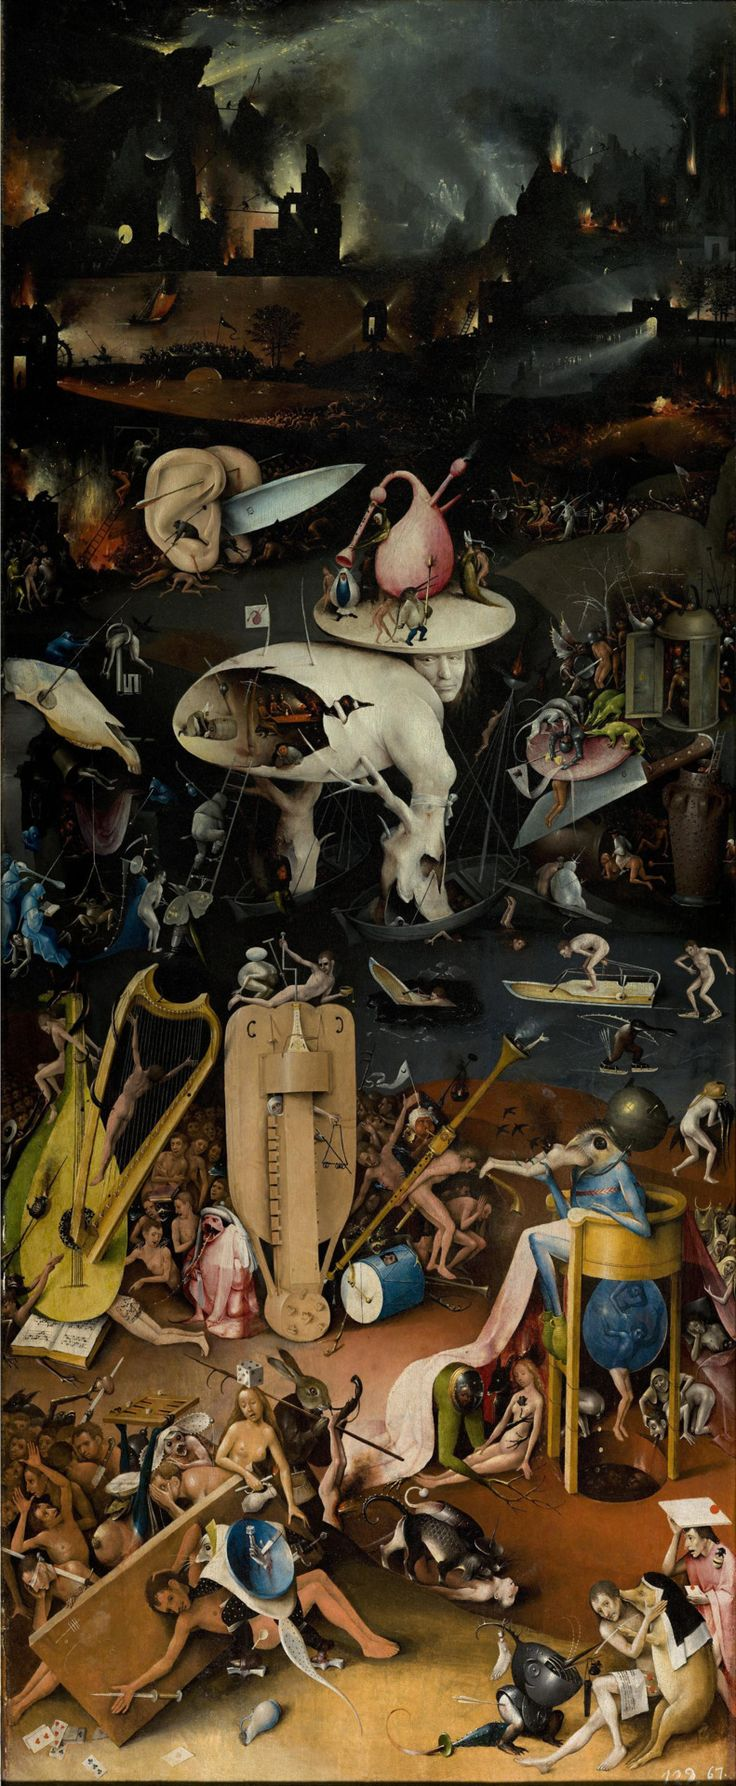 Hieronymus Bosch, The Garden of Earthly Delights (detail), 1515. Museo del Prado, Madrid, Spain - feb 2016